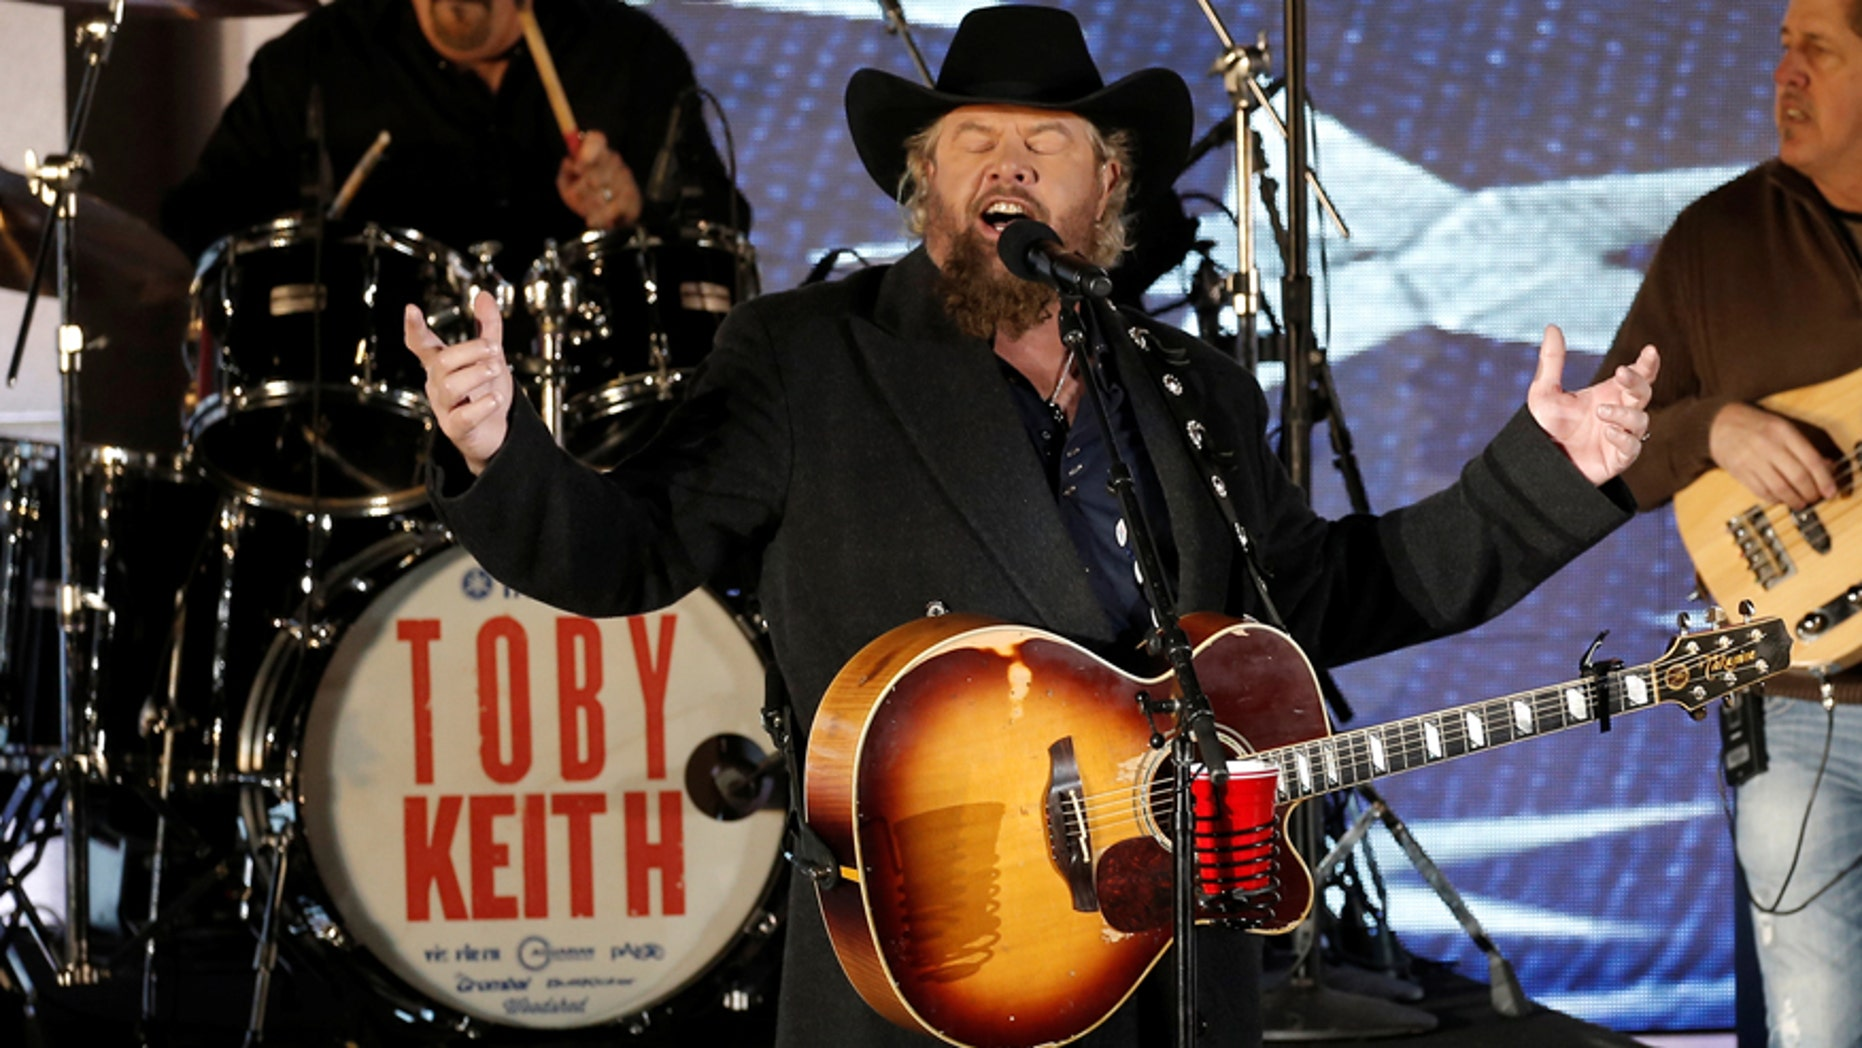 """Toby Keith performs at the """"Make America Great Again! Welcome Celebration"""" concert at the Lincoln Memorial in Washington, U.S., January 19, 2017."""